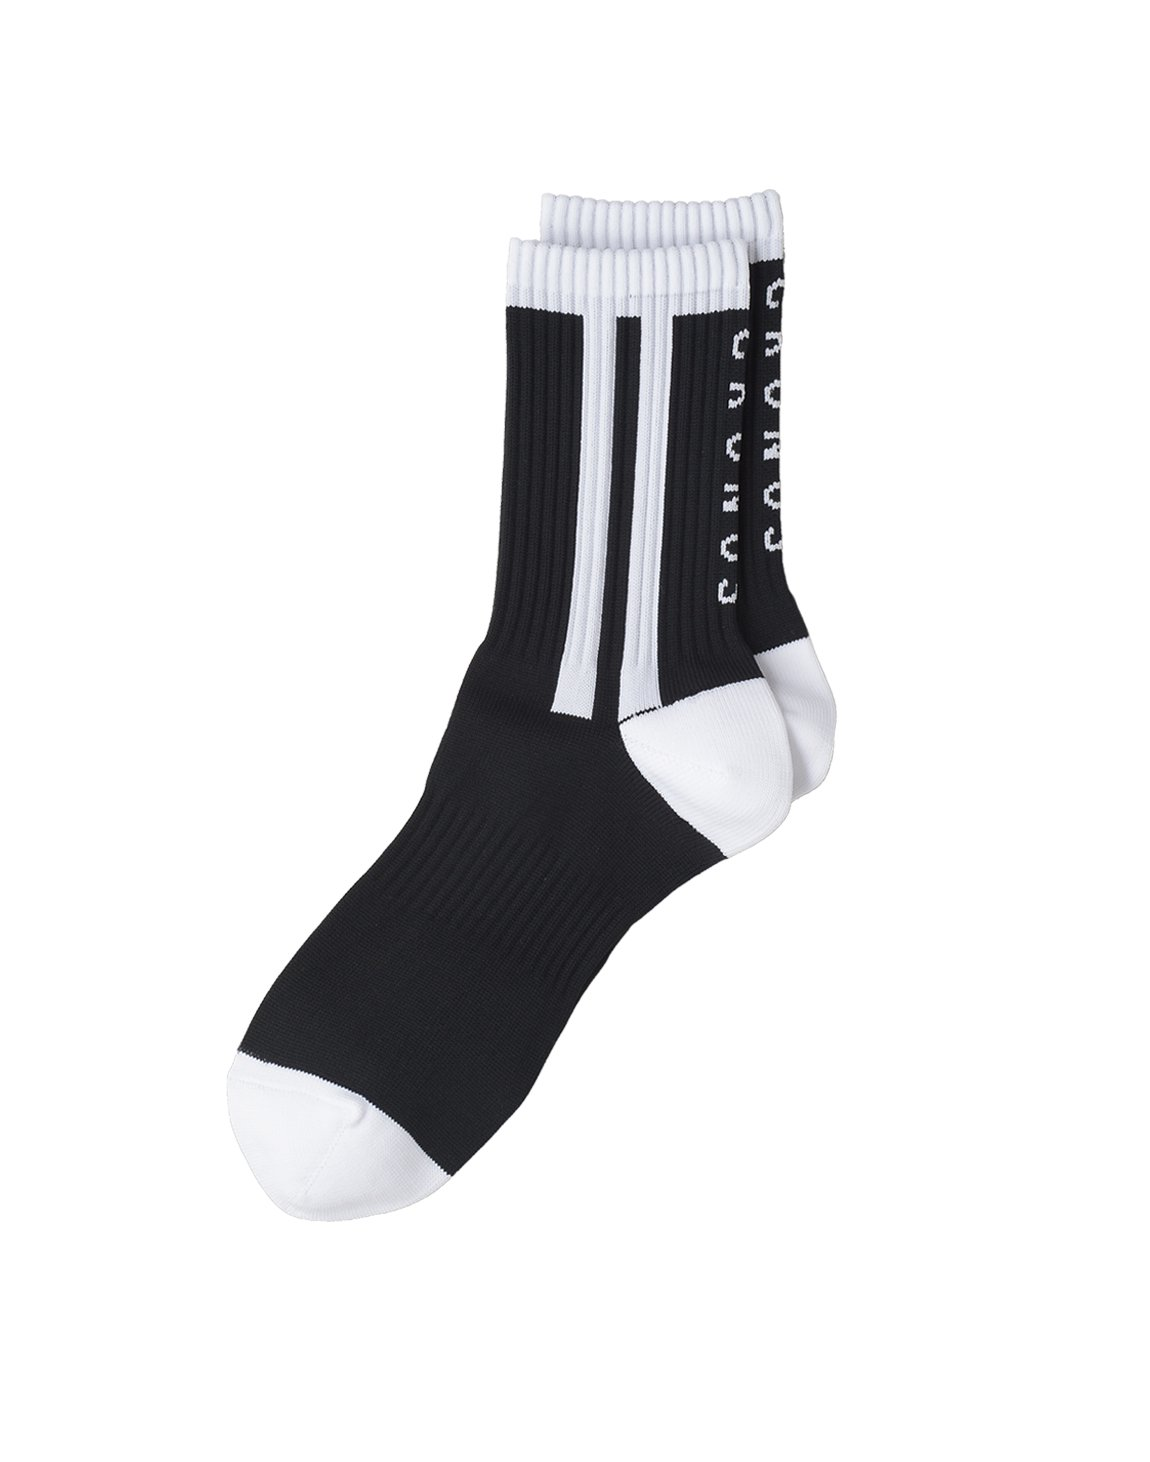 CRONOS 2STRIPE SOCKS【BLACK】